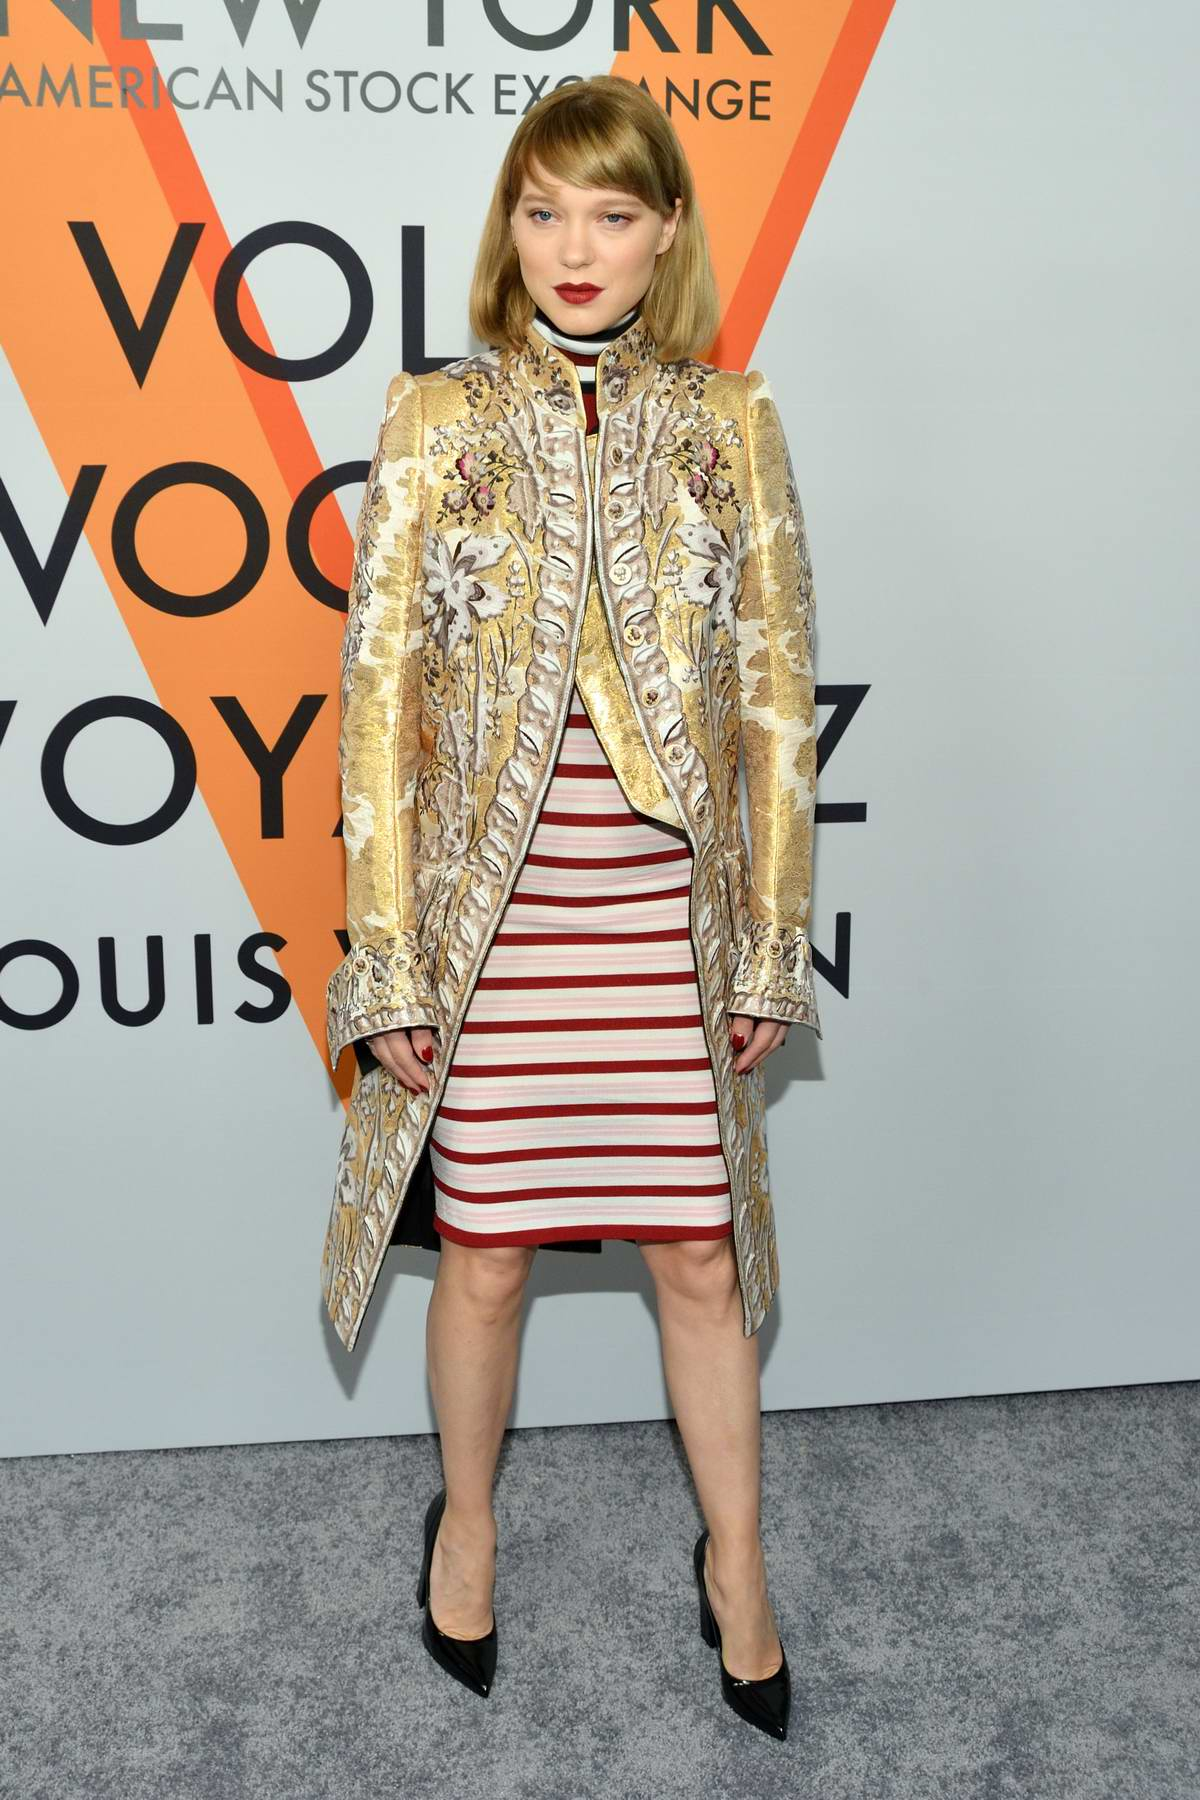 Lea Seydoux at Louis Vuitton 'Volez, Voguez, Voyagez' exhibition opening in New York